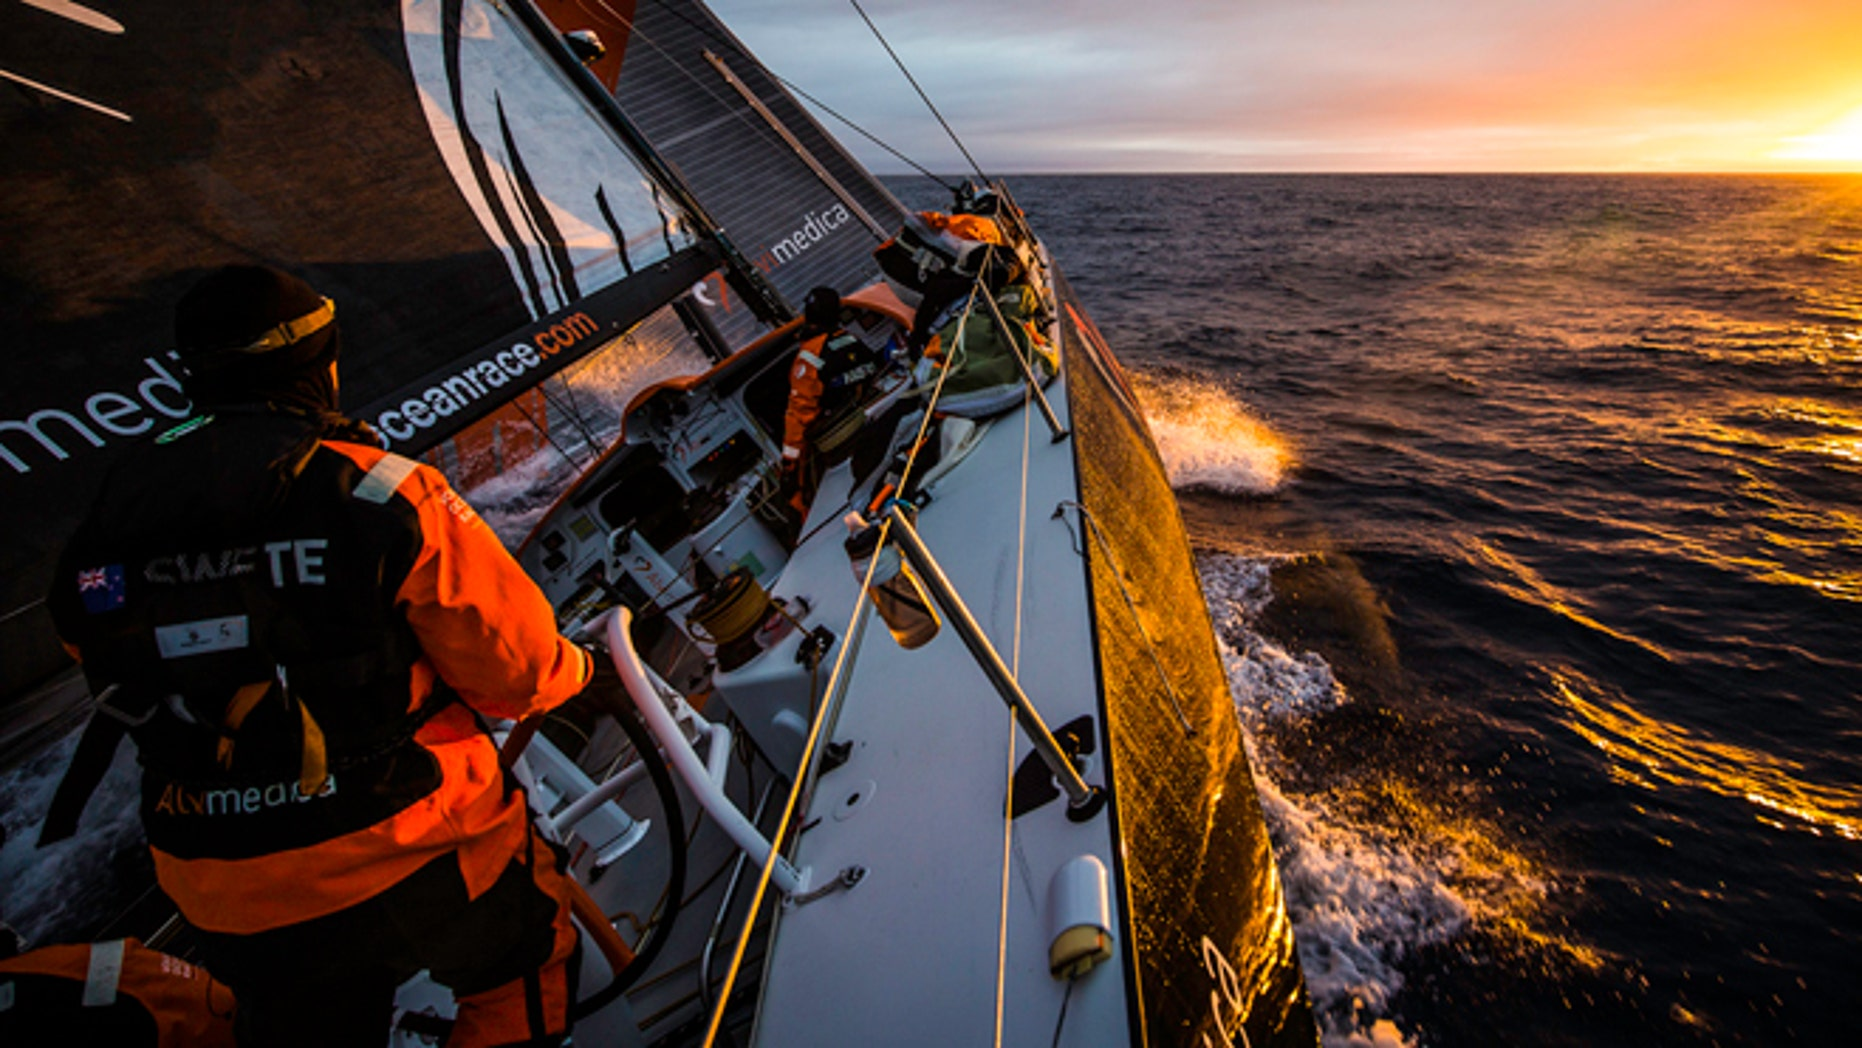 AT SEA - NOVEMBER 4: Onboard Team Alvimedica. Day 24. With just 650 miles to Cape Town, the sailing slows considerably as a high-pressure system moves in from the west. The first sunrise onboard Alvimedica in a week. Leg 1 between Alicante, Spain and Cape Town, South Africa. The Volvo Ocean Race 2014-15 is the 12th running of this ocean marathon. Starting from Alicante in Spain on October 11, 2014, the route, spanning some 39,379 nautical miles, visits 11 ports in 11 countries (Spain, South Africa, United Arab Emirates, China, New Zealand, Brazil, United States, Portugal, France, the Netherlands and Sweden) over nine months. The Volvo Ocean Race is the world's premier ocean race for professional racing crews. (Photo by Amory Ross/Team Alvimedica/Volvo Ocean Race via Getty Images)